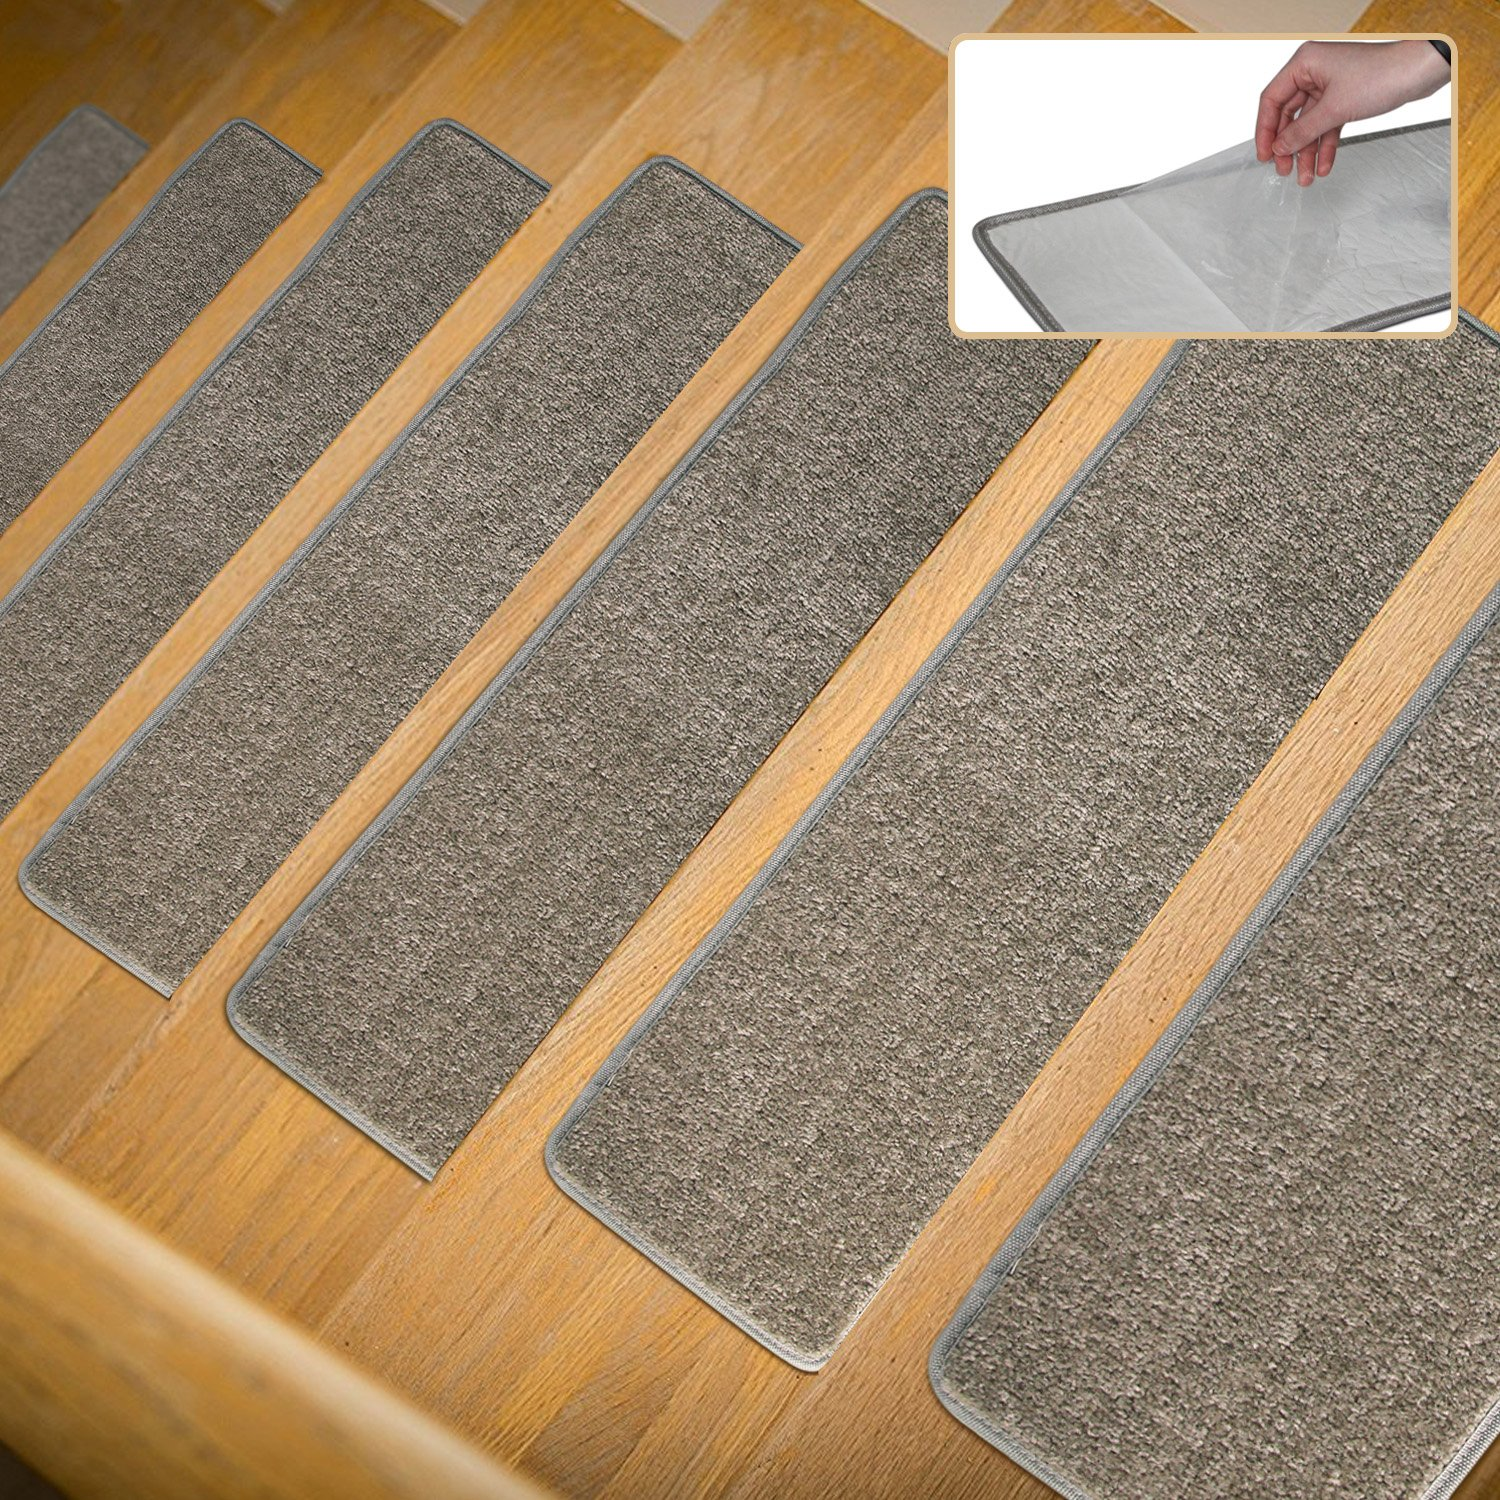 Clever.P.T Stair Carpet Treads 1 Piece Indoor Self Adhesive Skid Resistant Stair Treads Rugs Mats Rubber Backing (8 inch x 30 inch),Light Grey